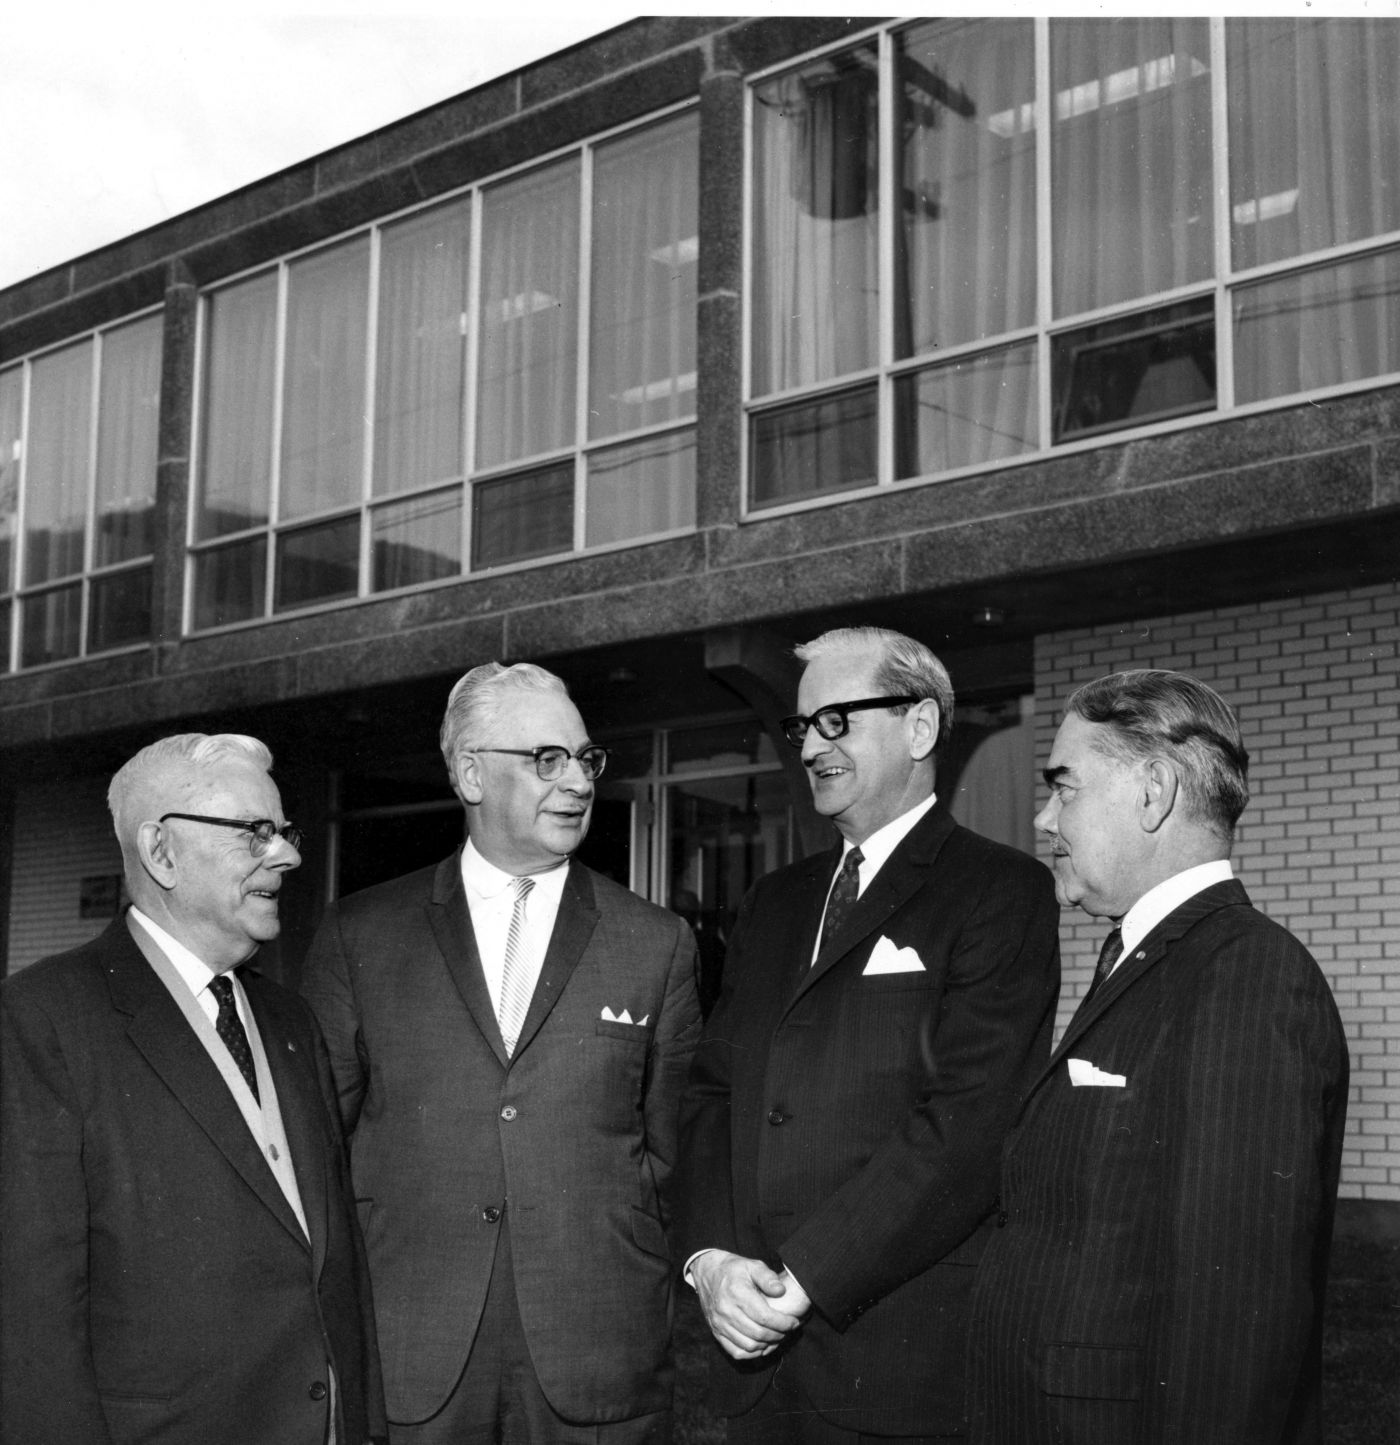 Black and white photograph of four elderly men wearing suits and ties, talking in front of a two-storey brick building. The second floor is lined with large windows.